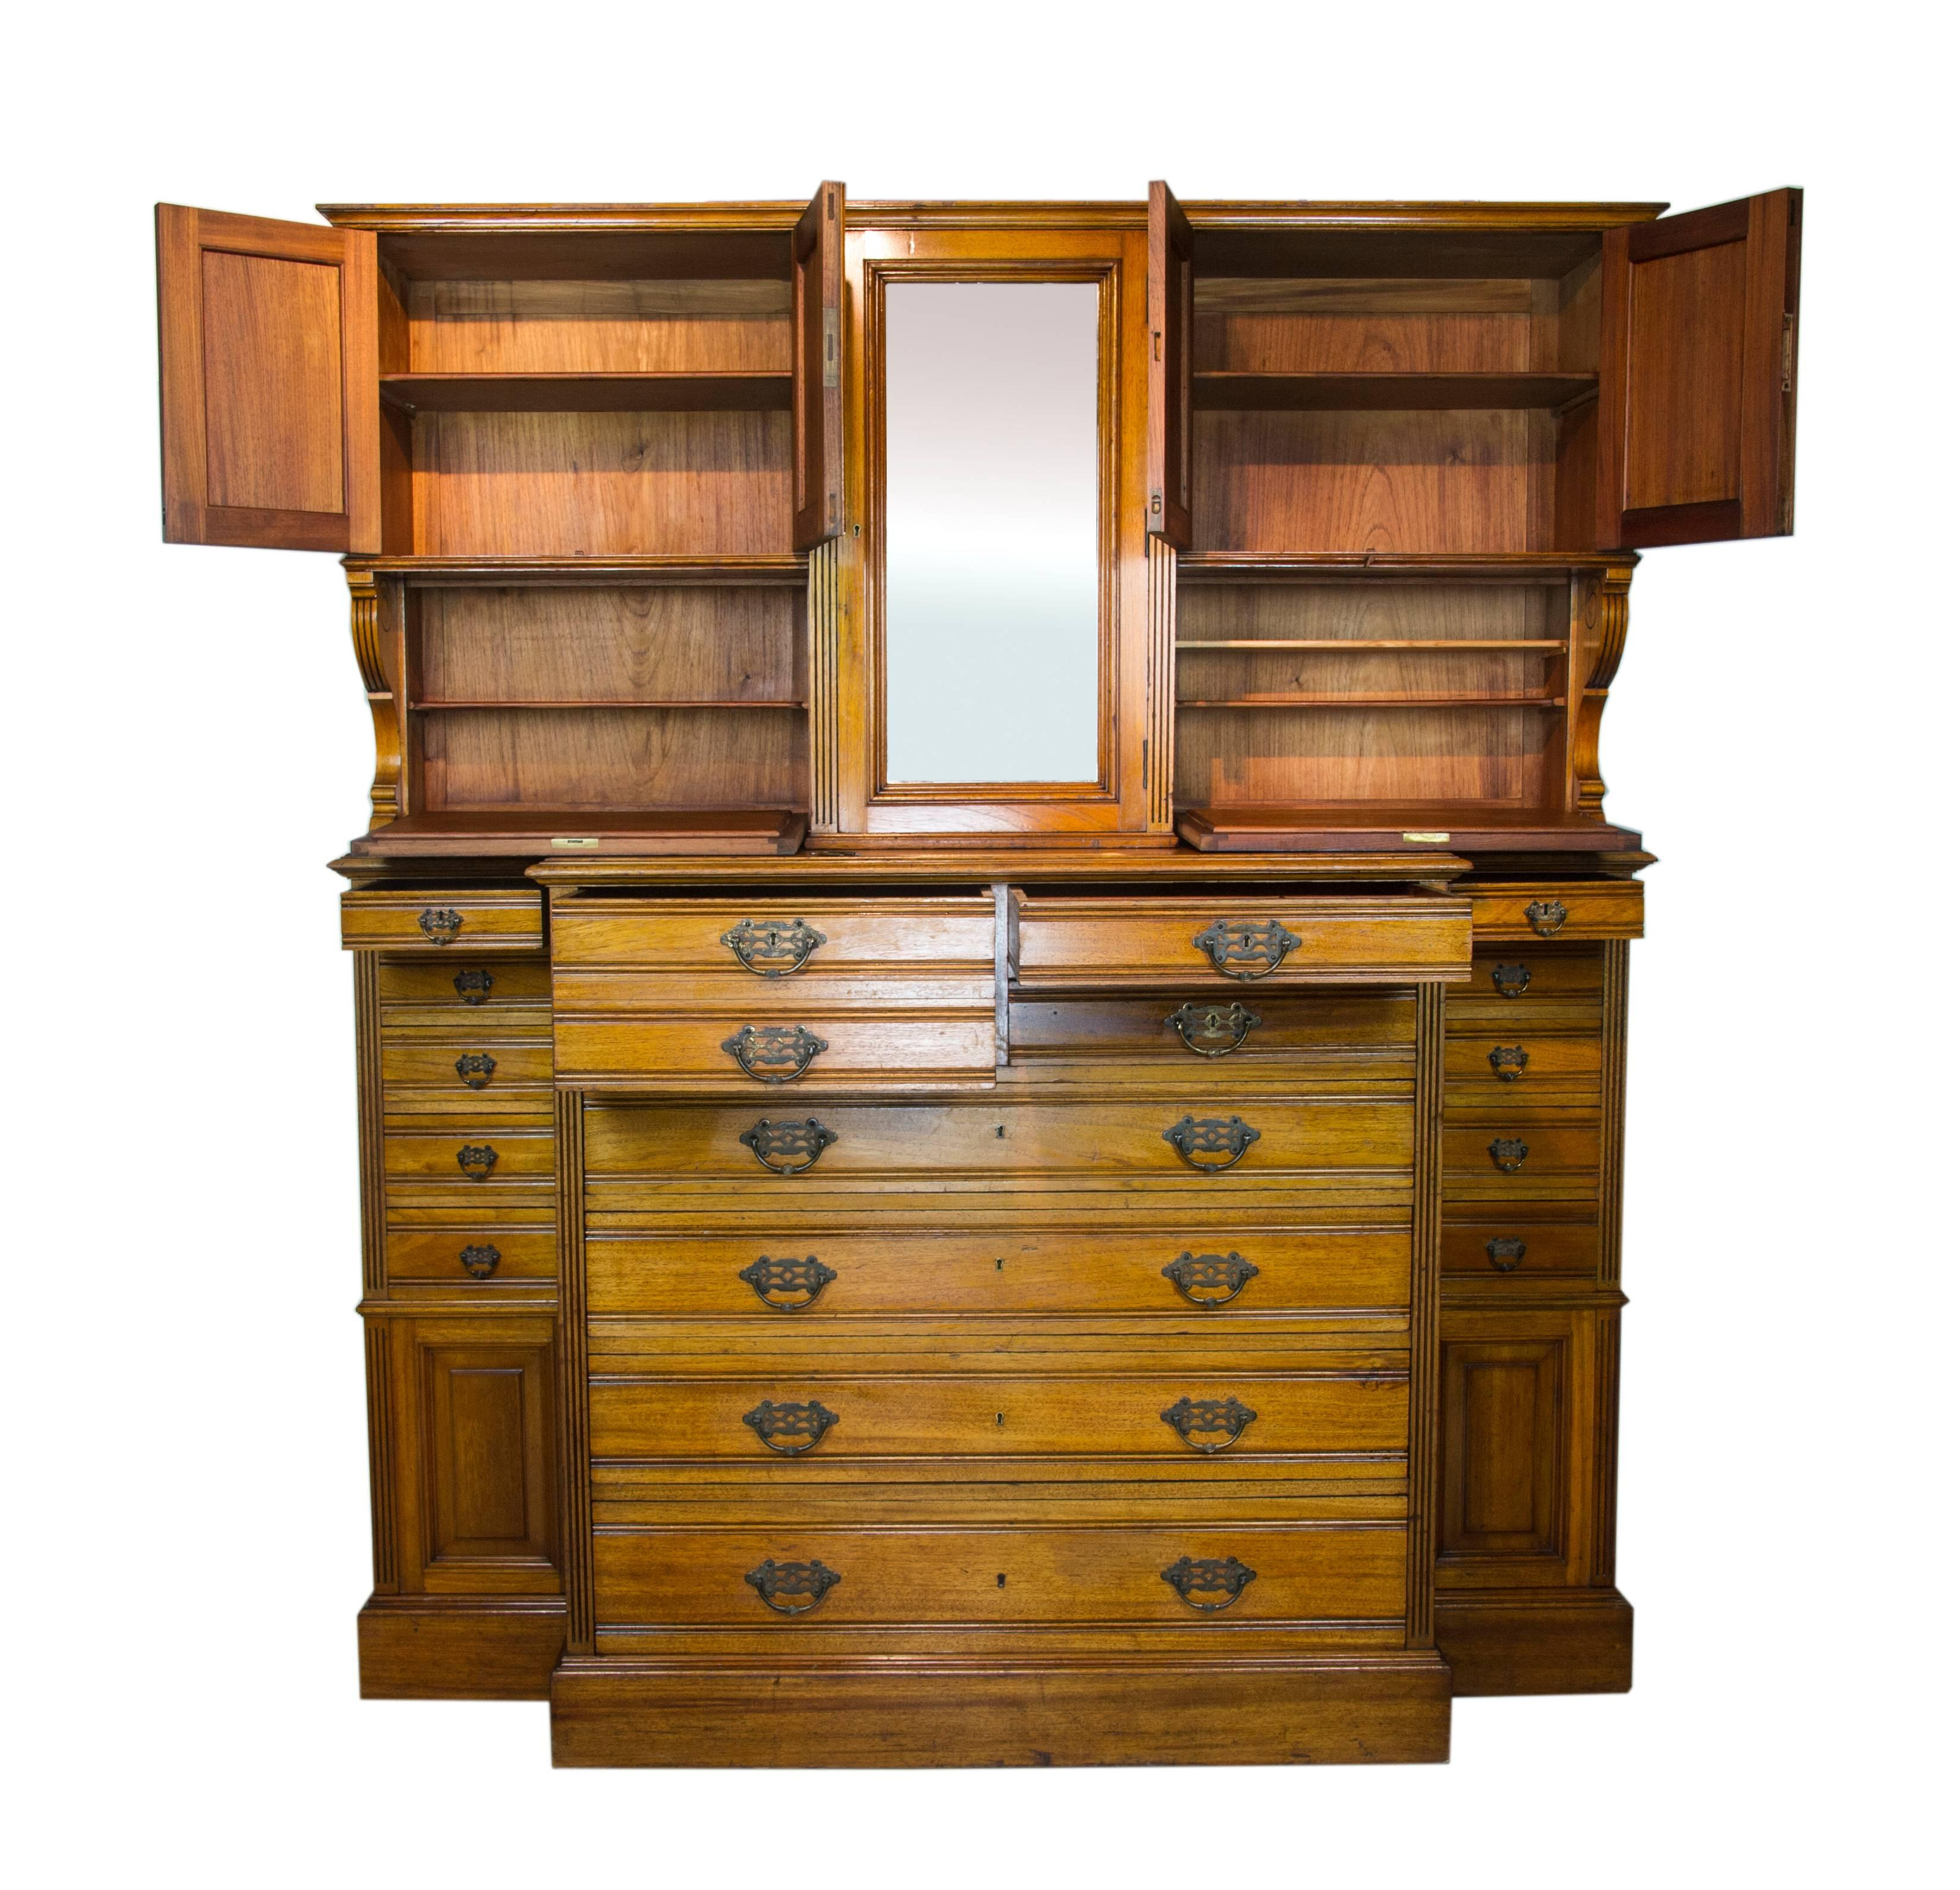 Antique Apothecary Cabinet, Antique Dentist Cabinet, Solid Walnut, 1870, B1061